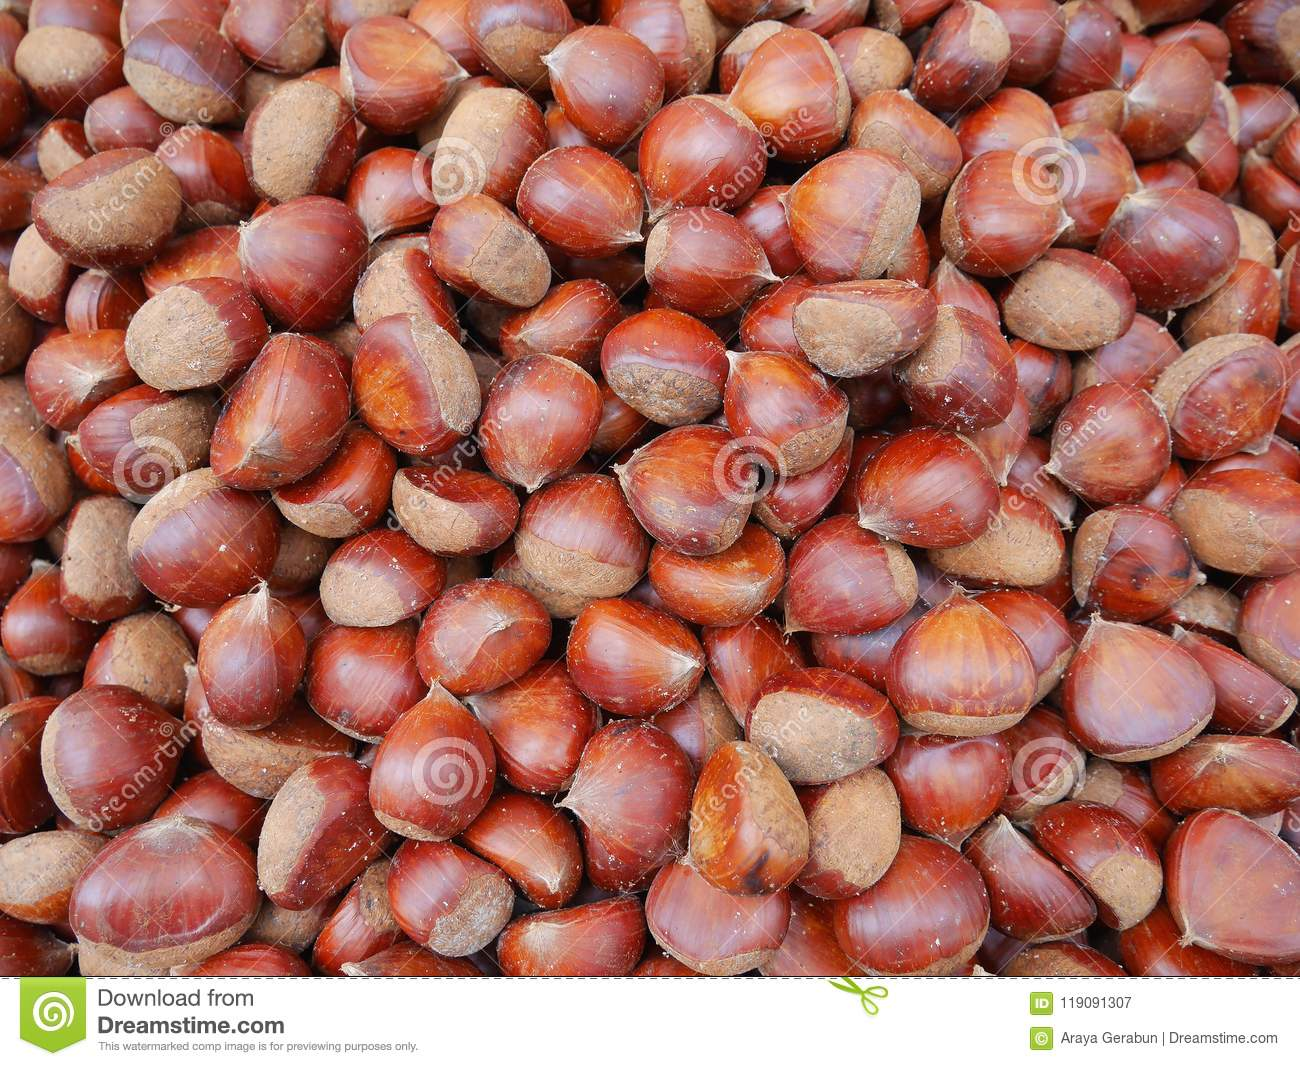 Sweet chestnuts, edible chestnuts inedible ones are called horse chestnuts salt roasted, are healthy and delicious snacks